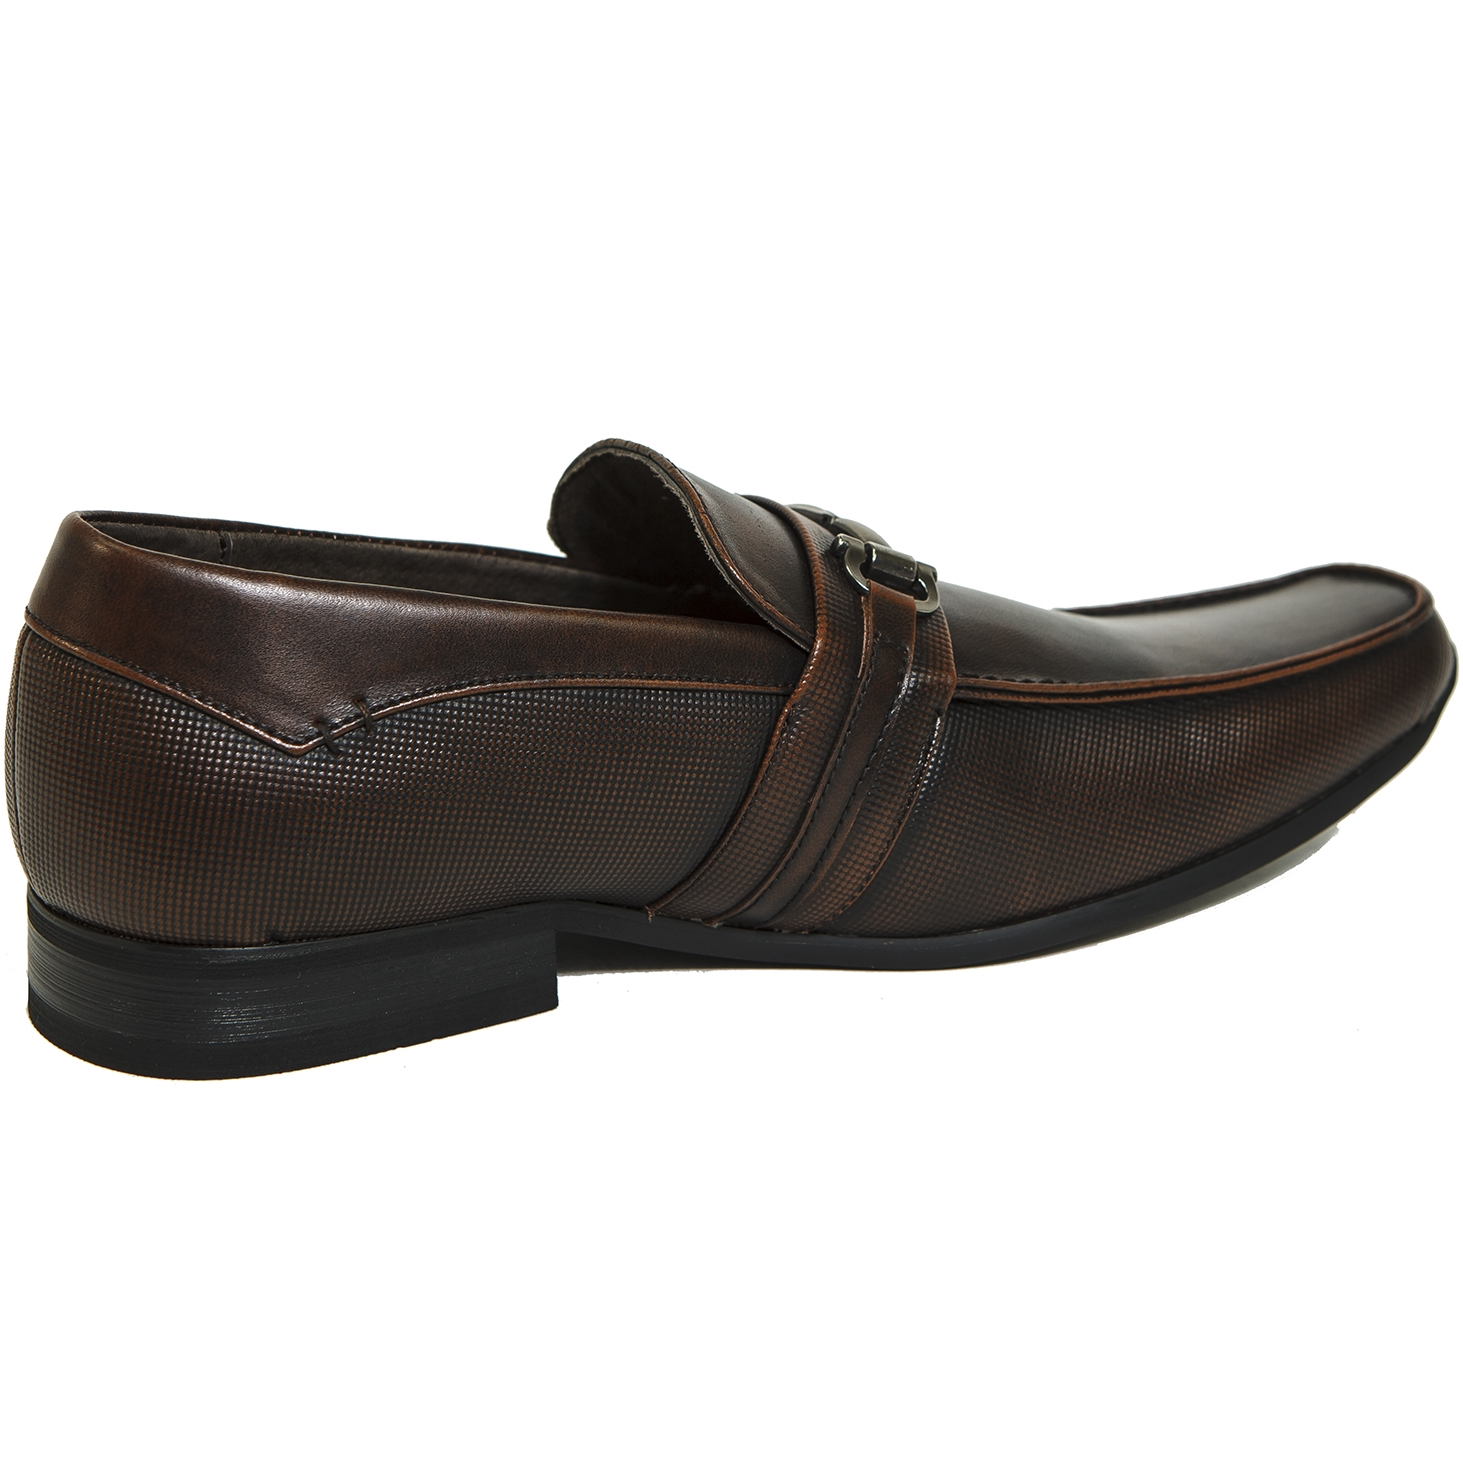 Mens Narrow Slip On Shoes Casual